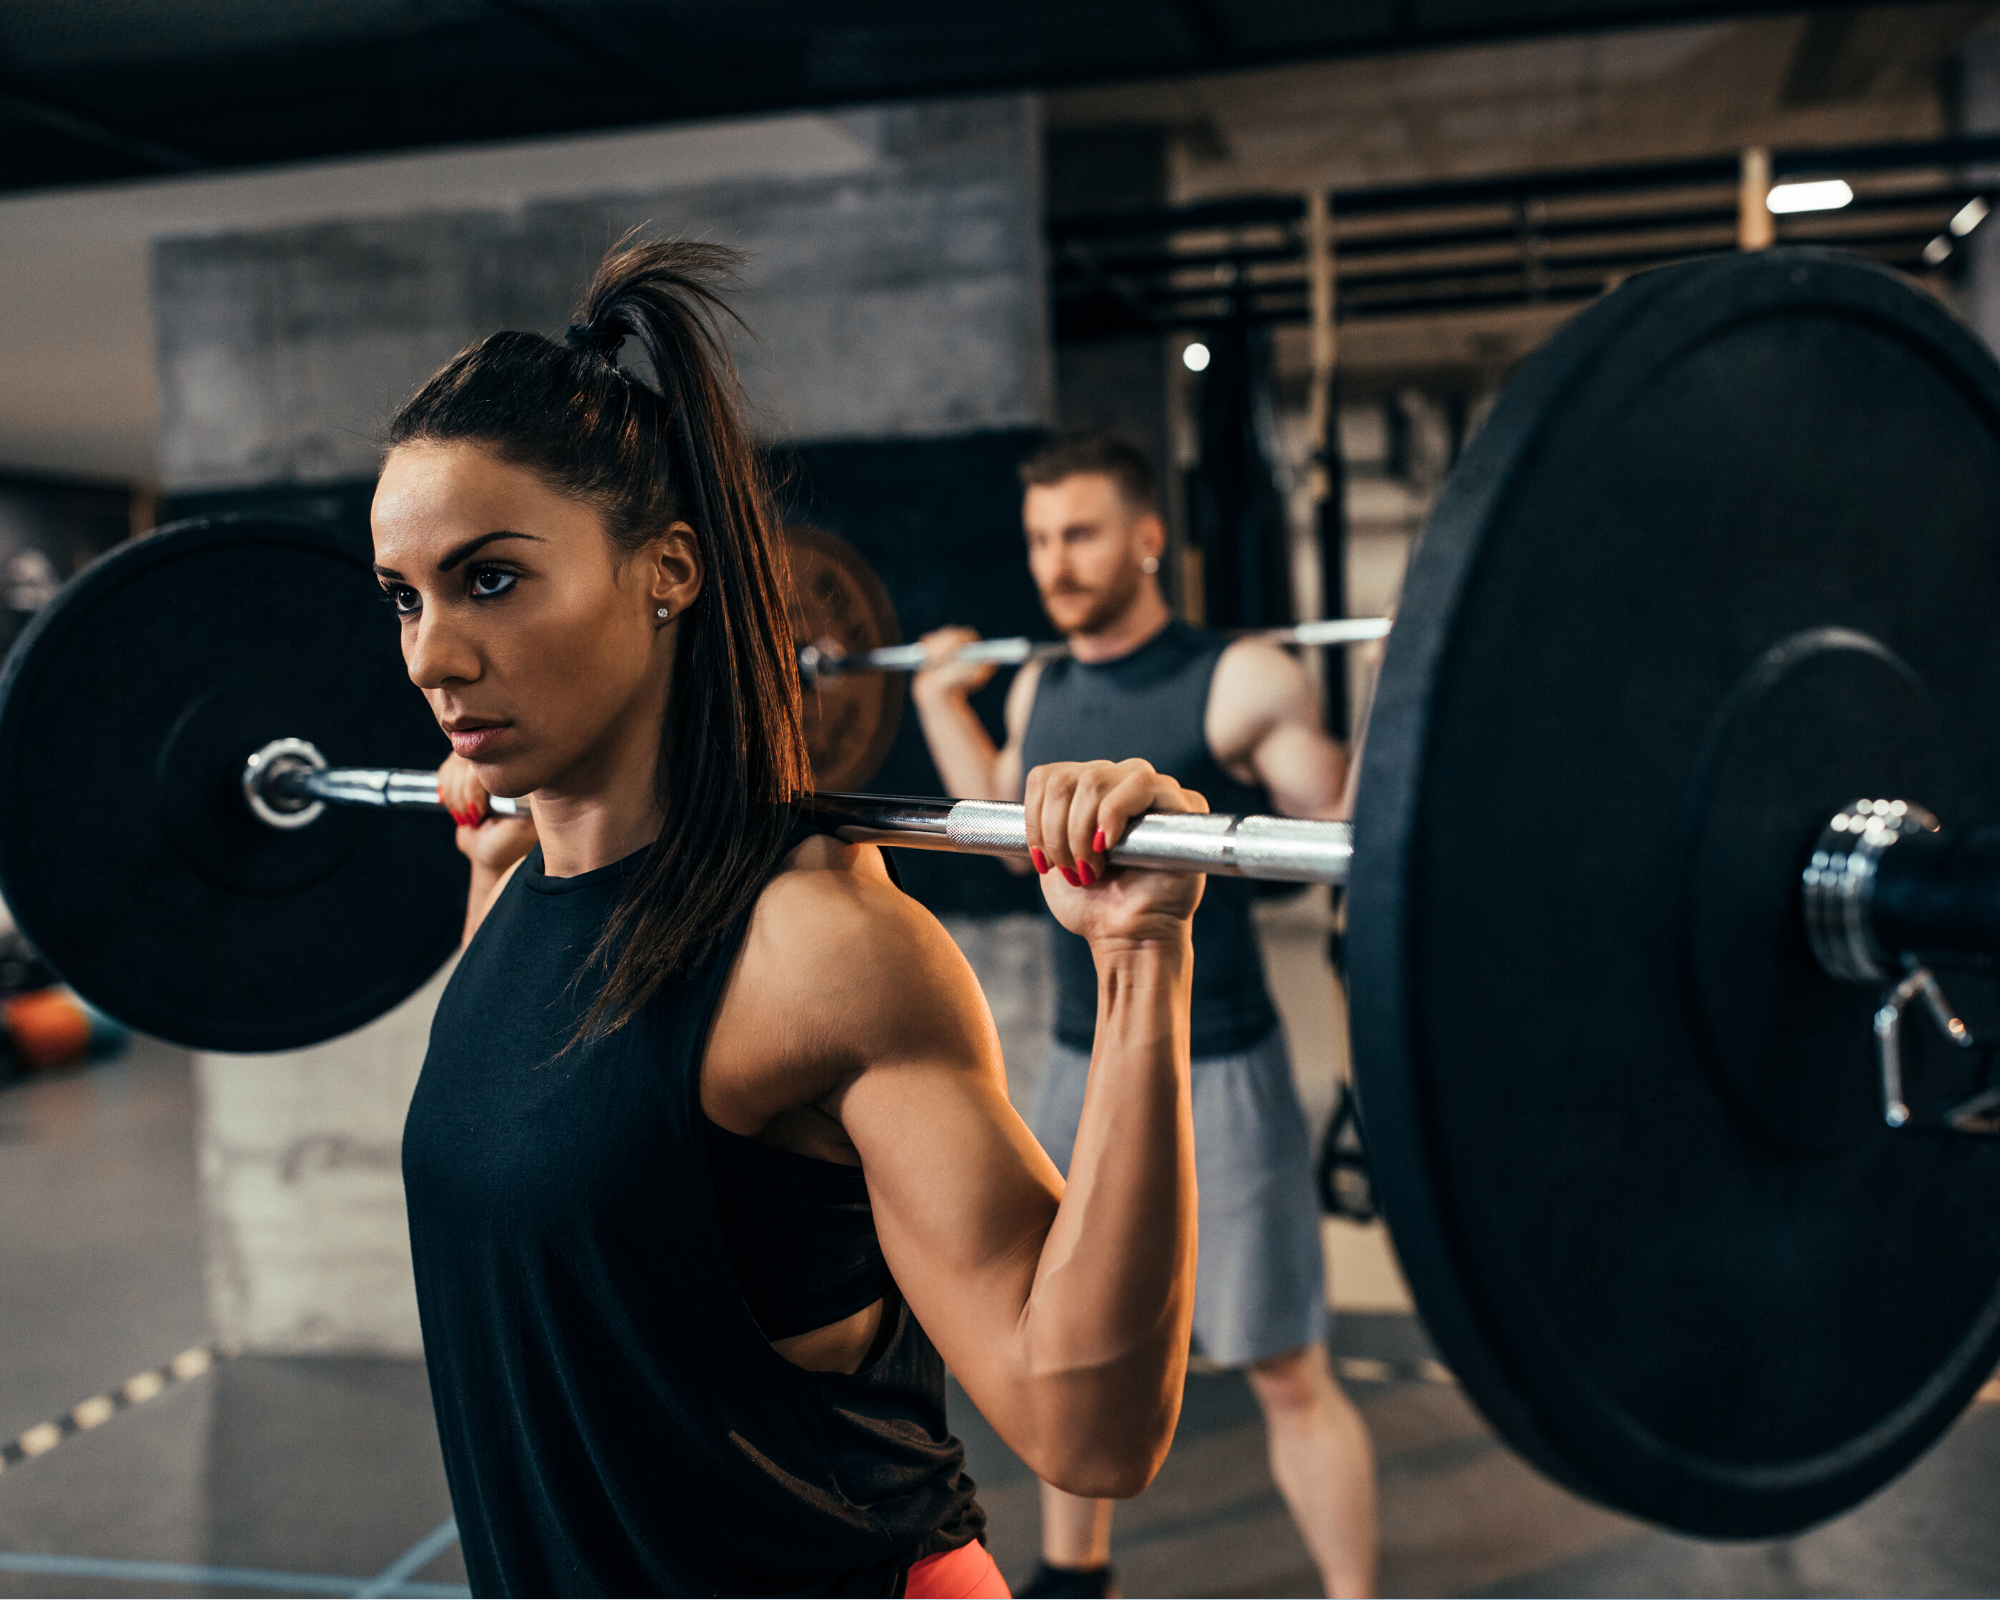 Strong women lifting weights in the gym